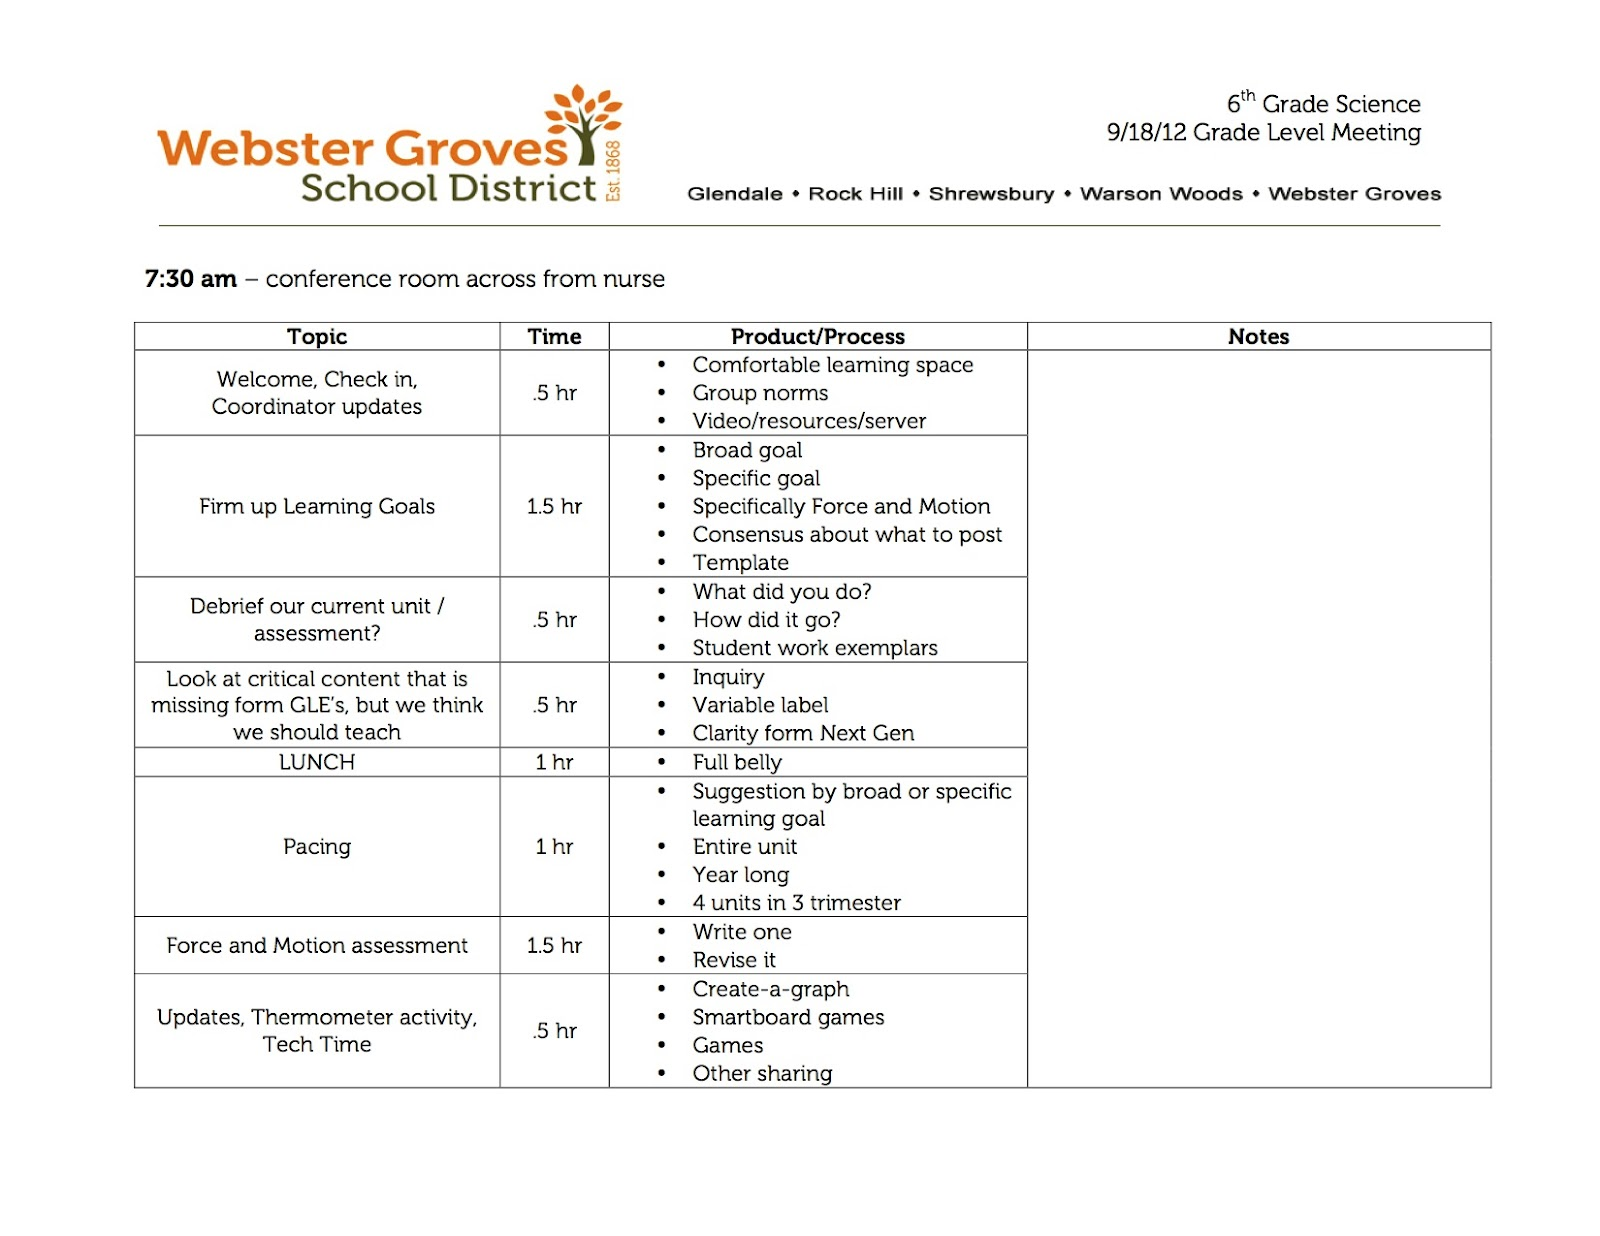 meeting debrief template - Yeni.mescale.co